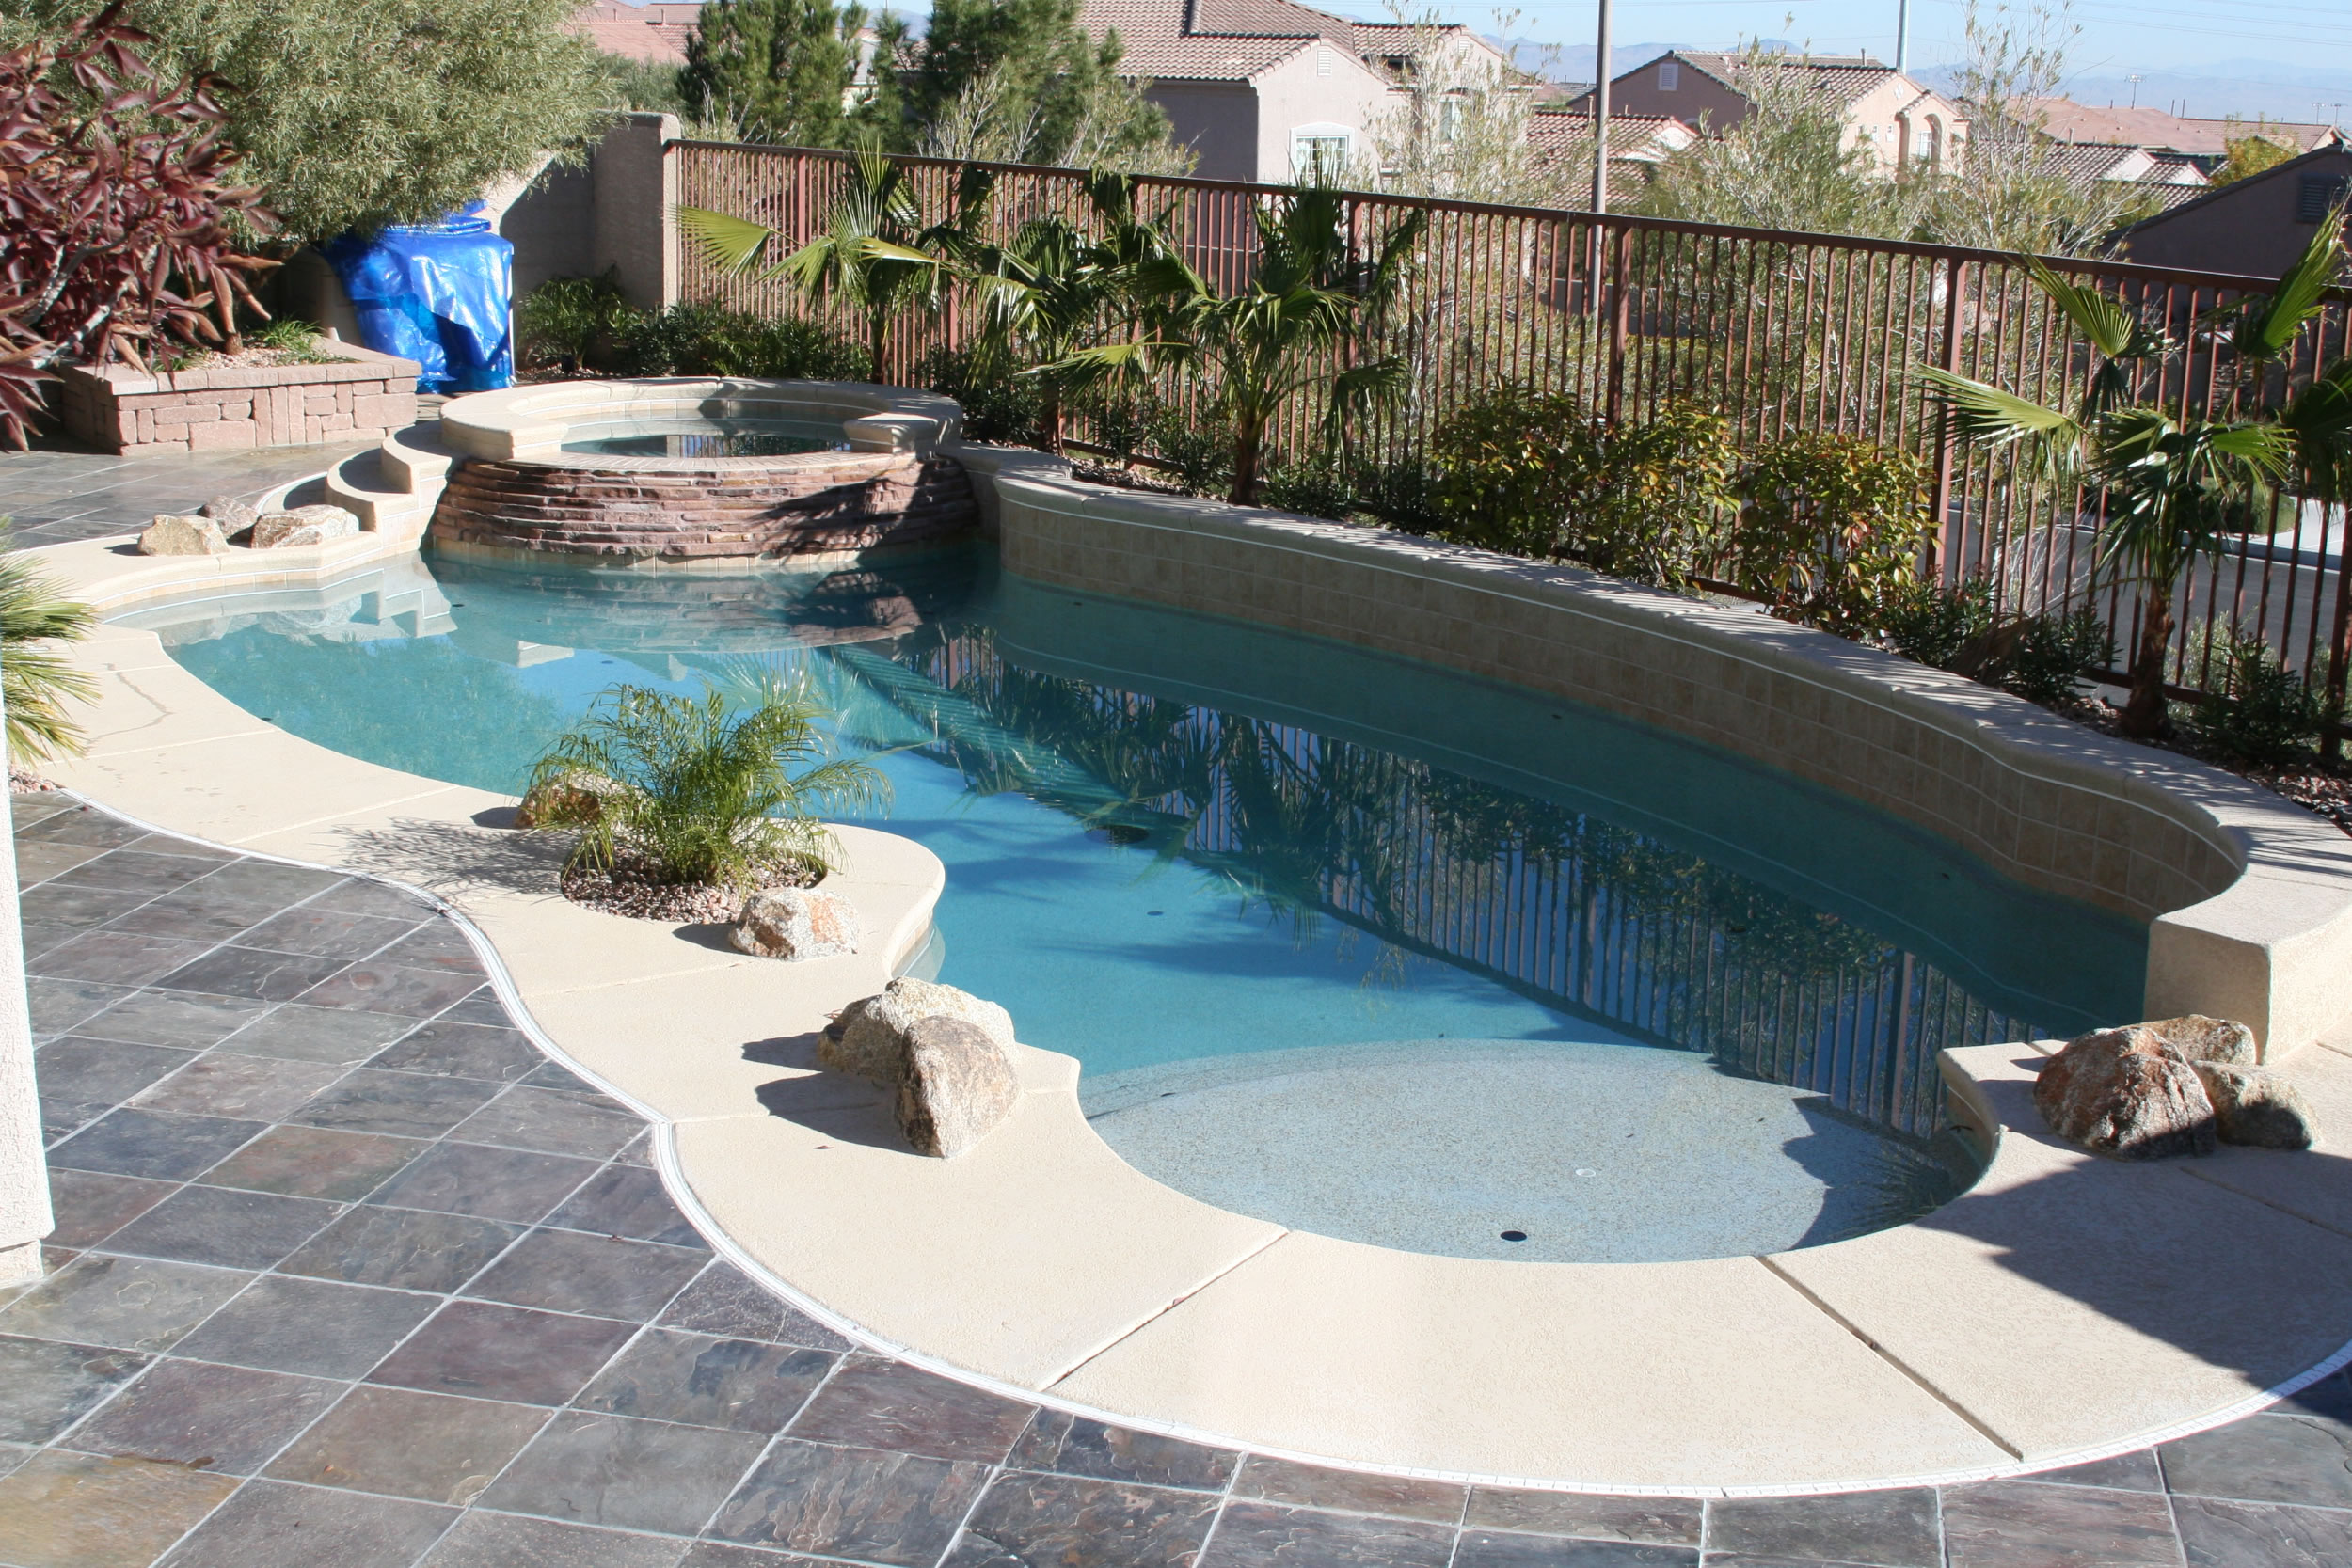 Simple Pool Designs swimming pool design with limited space Pool Design For Small Yards With Simple Architecture